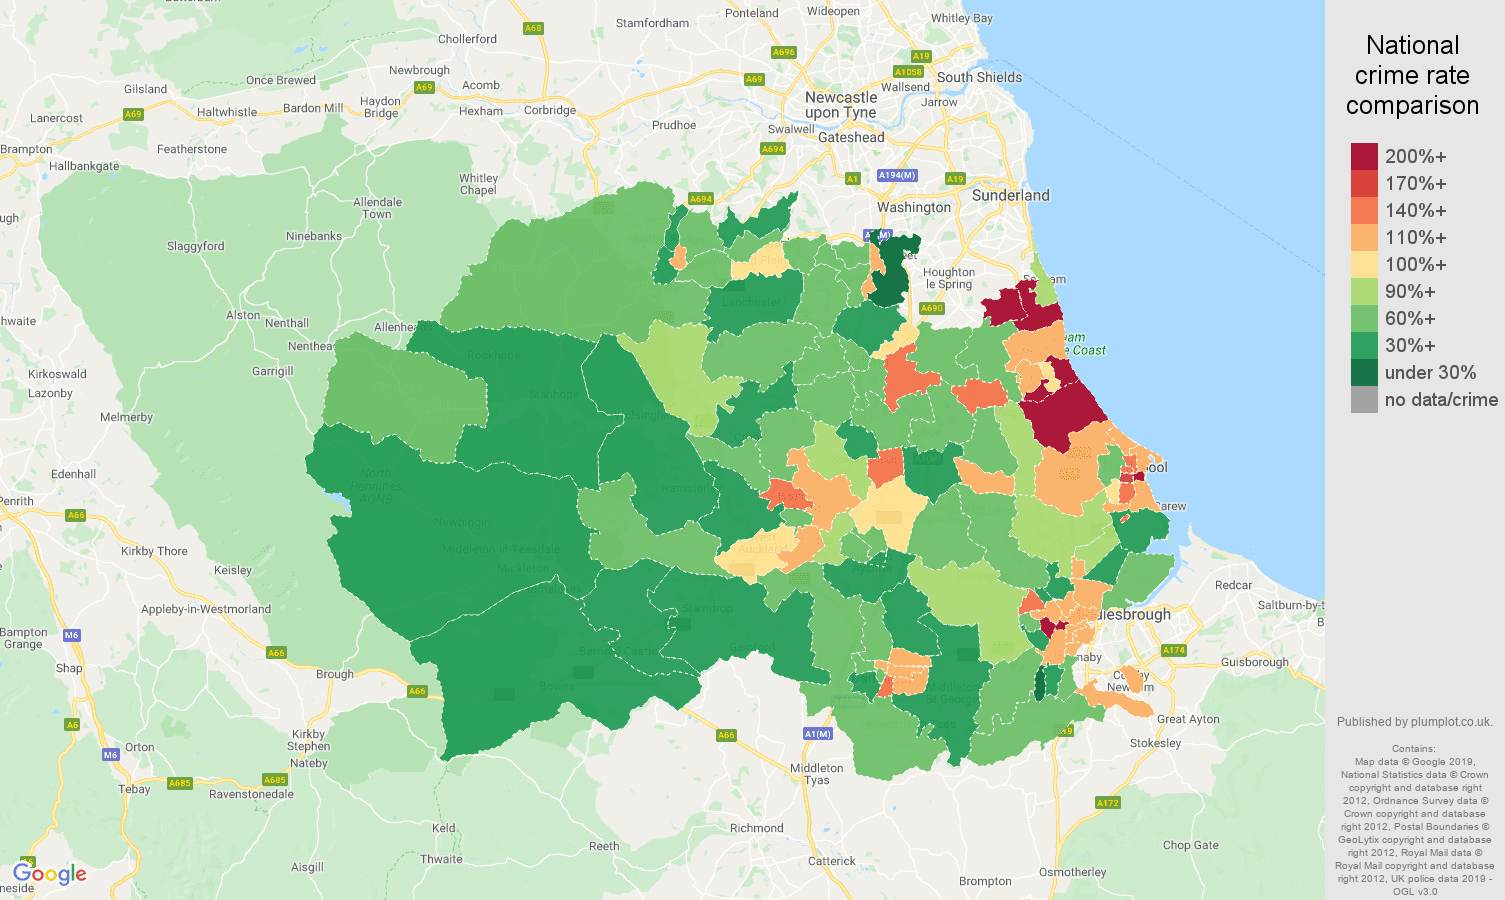 Durham county other theft crime rate comparison map